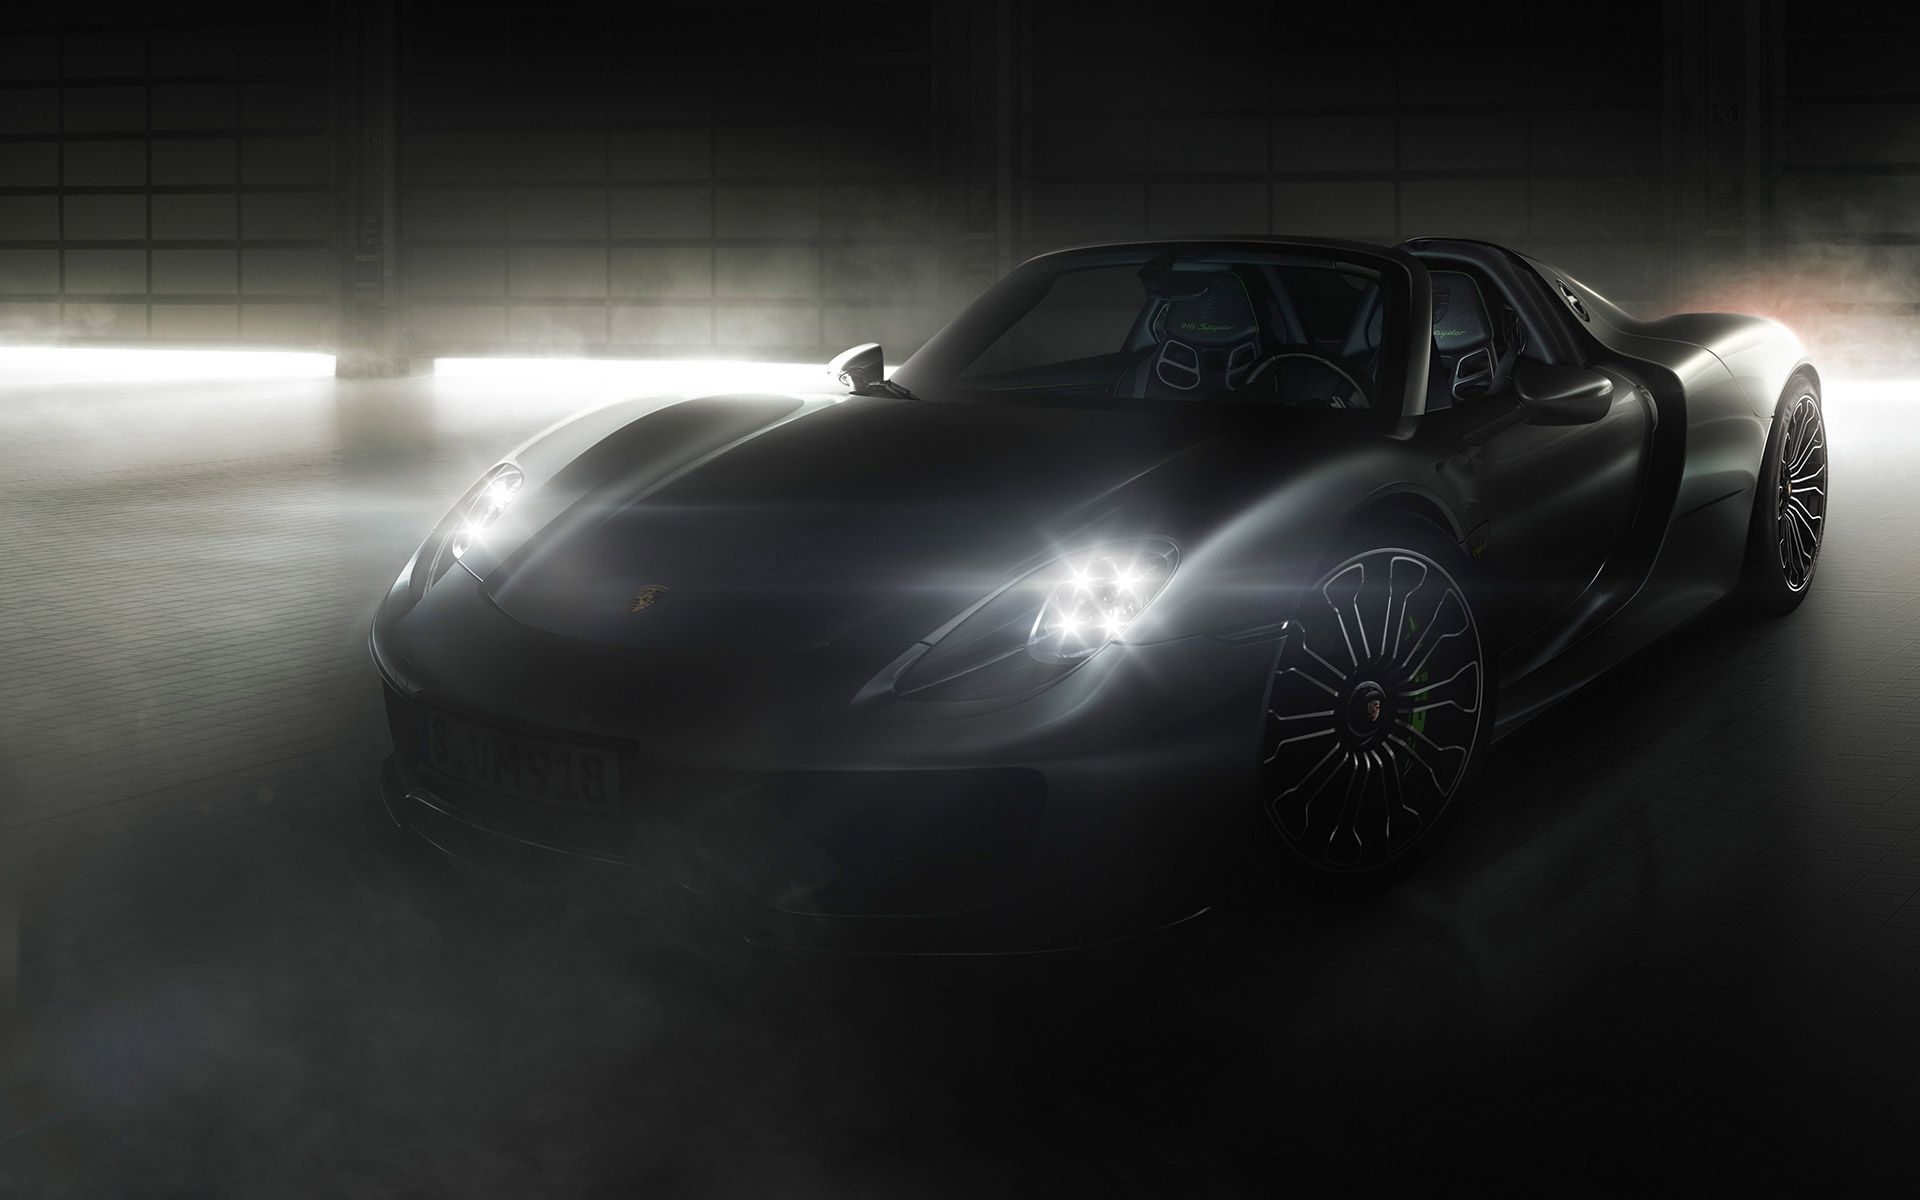 2015 porsche 918 spyder black wallpapers hd http. Black Bedroom Furniture Sets. Home Design Ideas